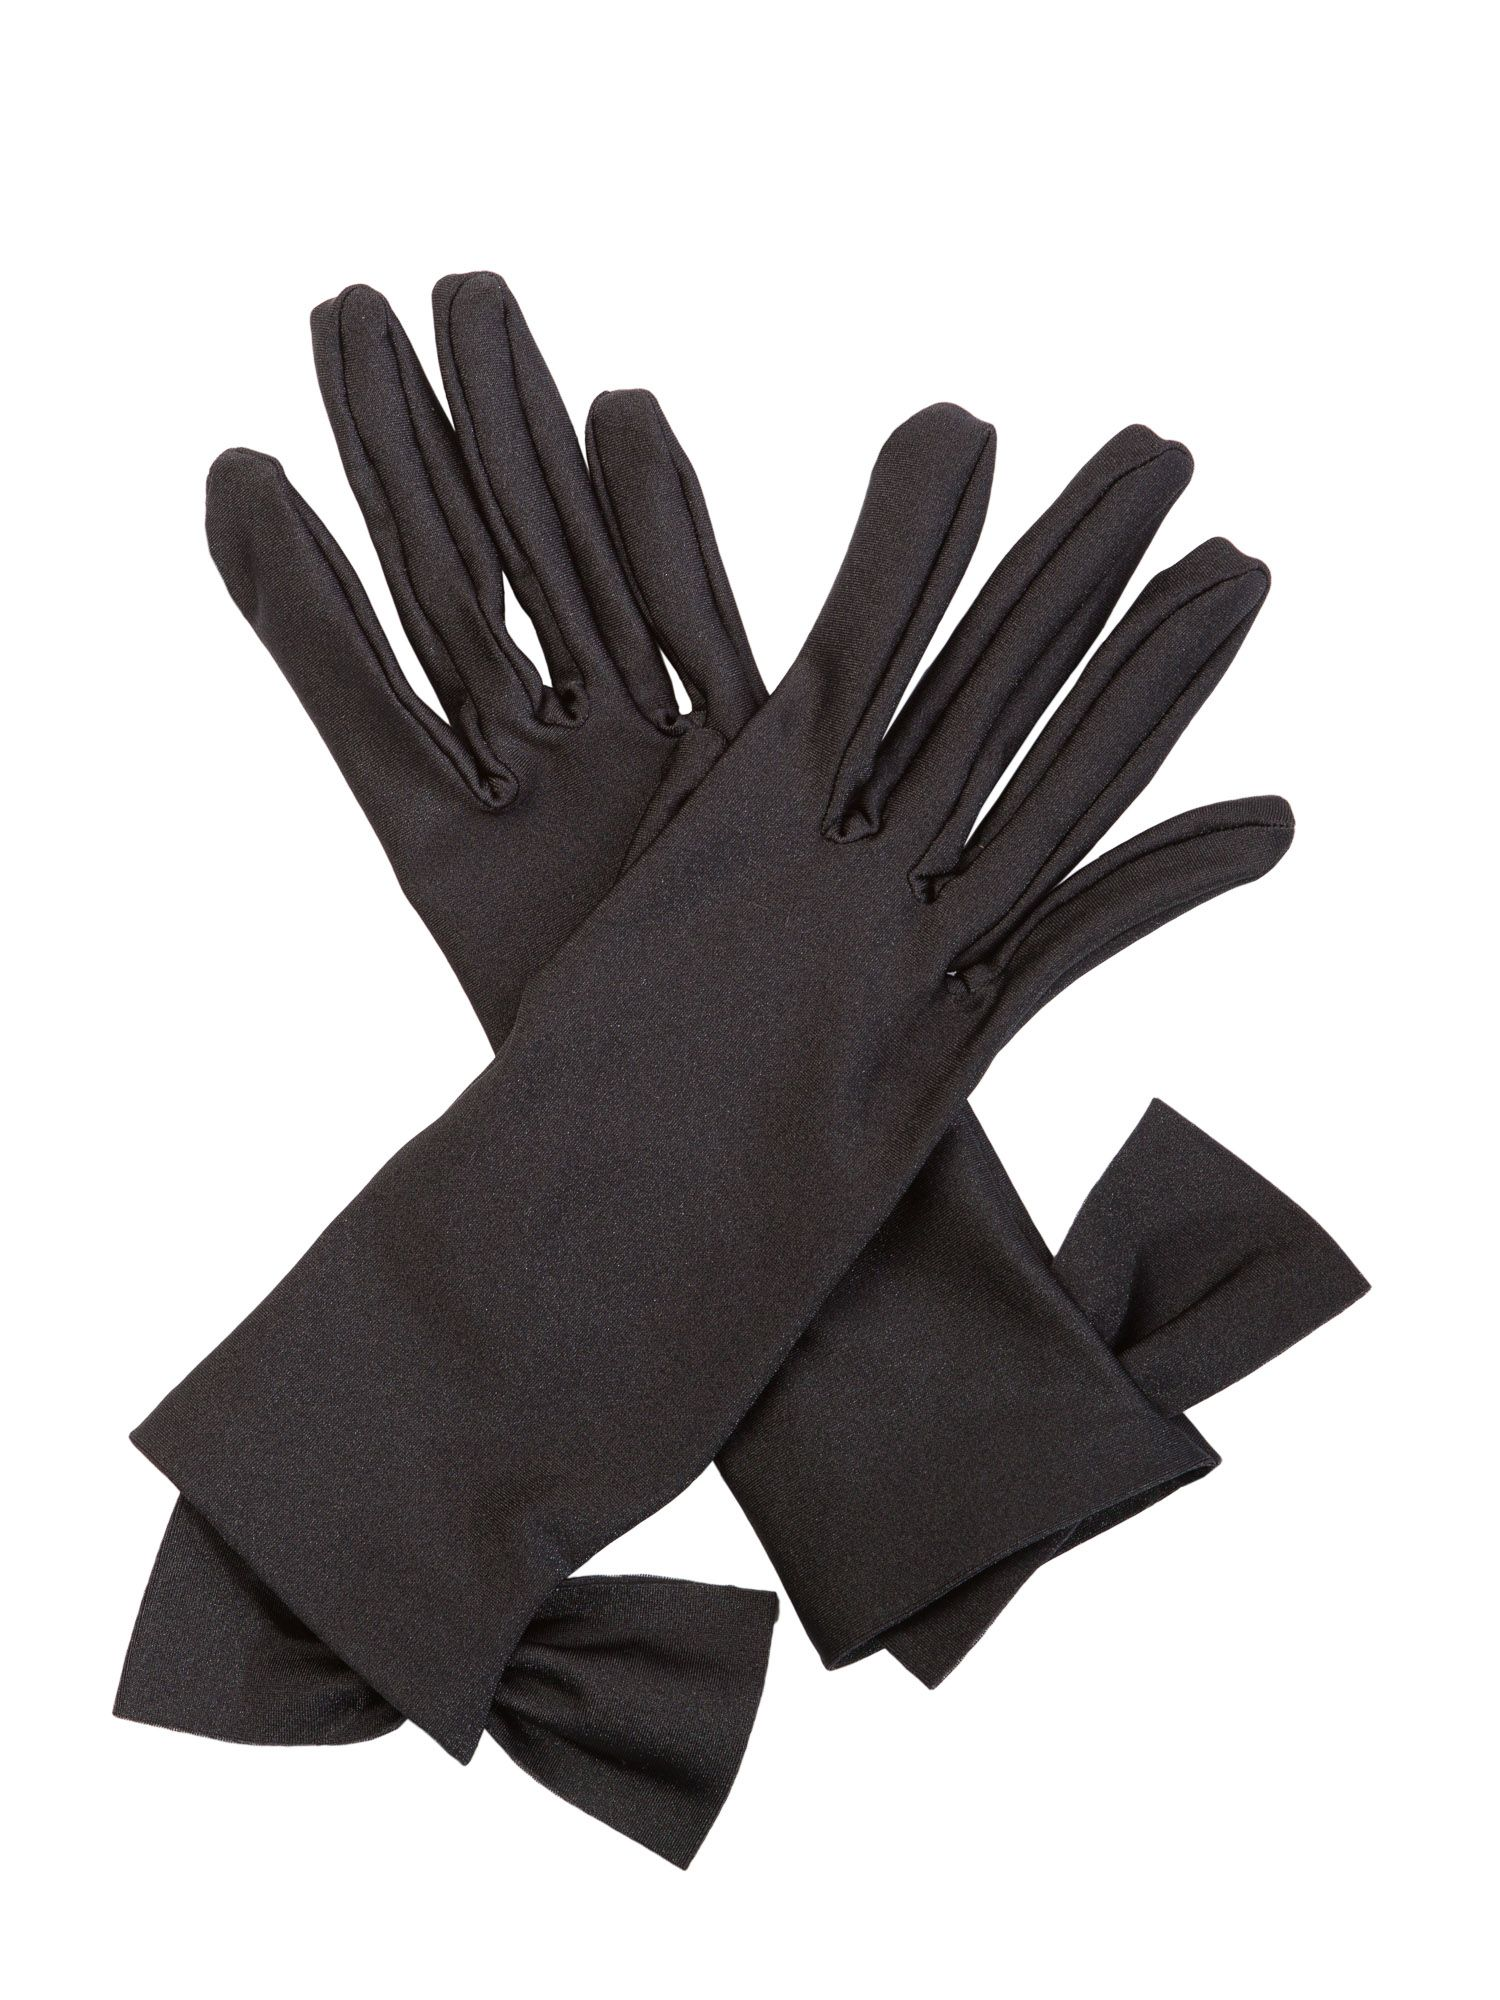 Vintage Style Gloves Cornelia James Viola Satin Gloves £55.00 AT vintagedancer.com